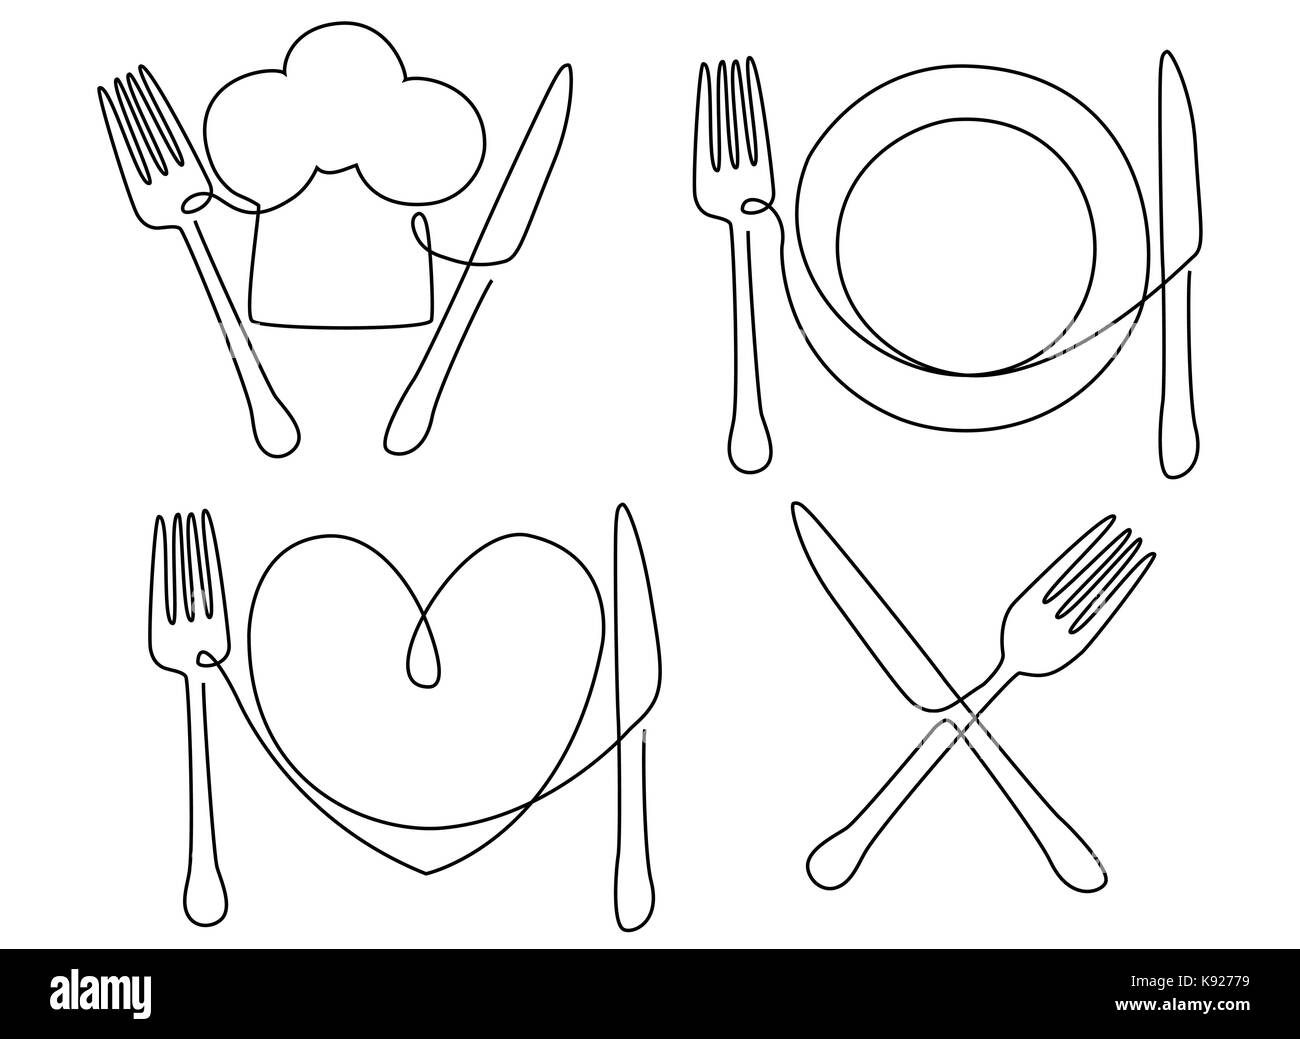 hight resolution of cultery and plate one line drawing